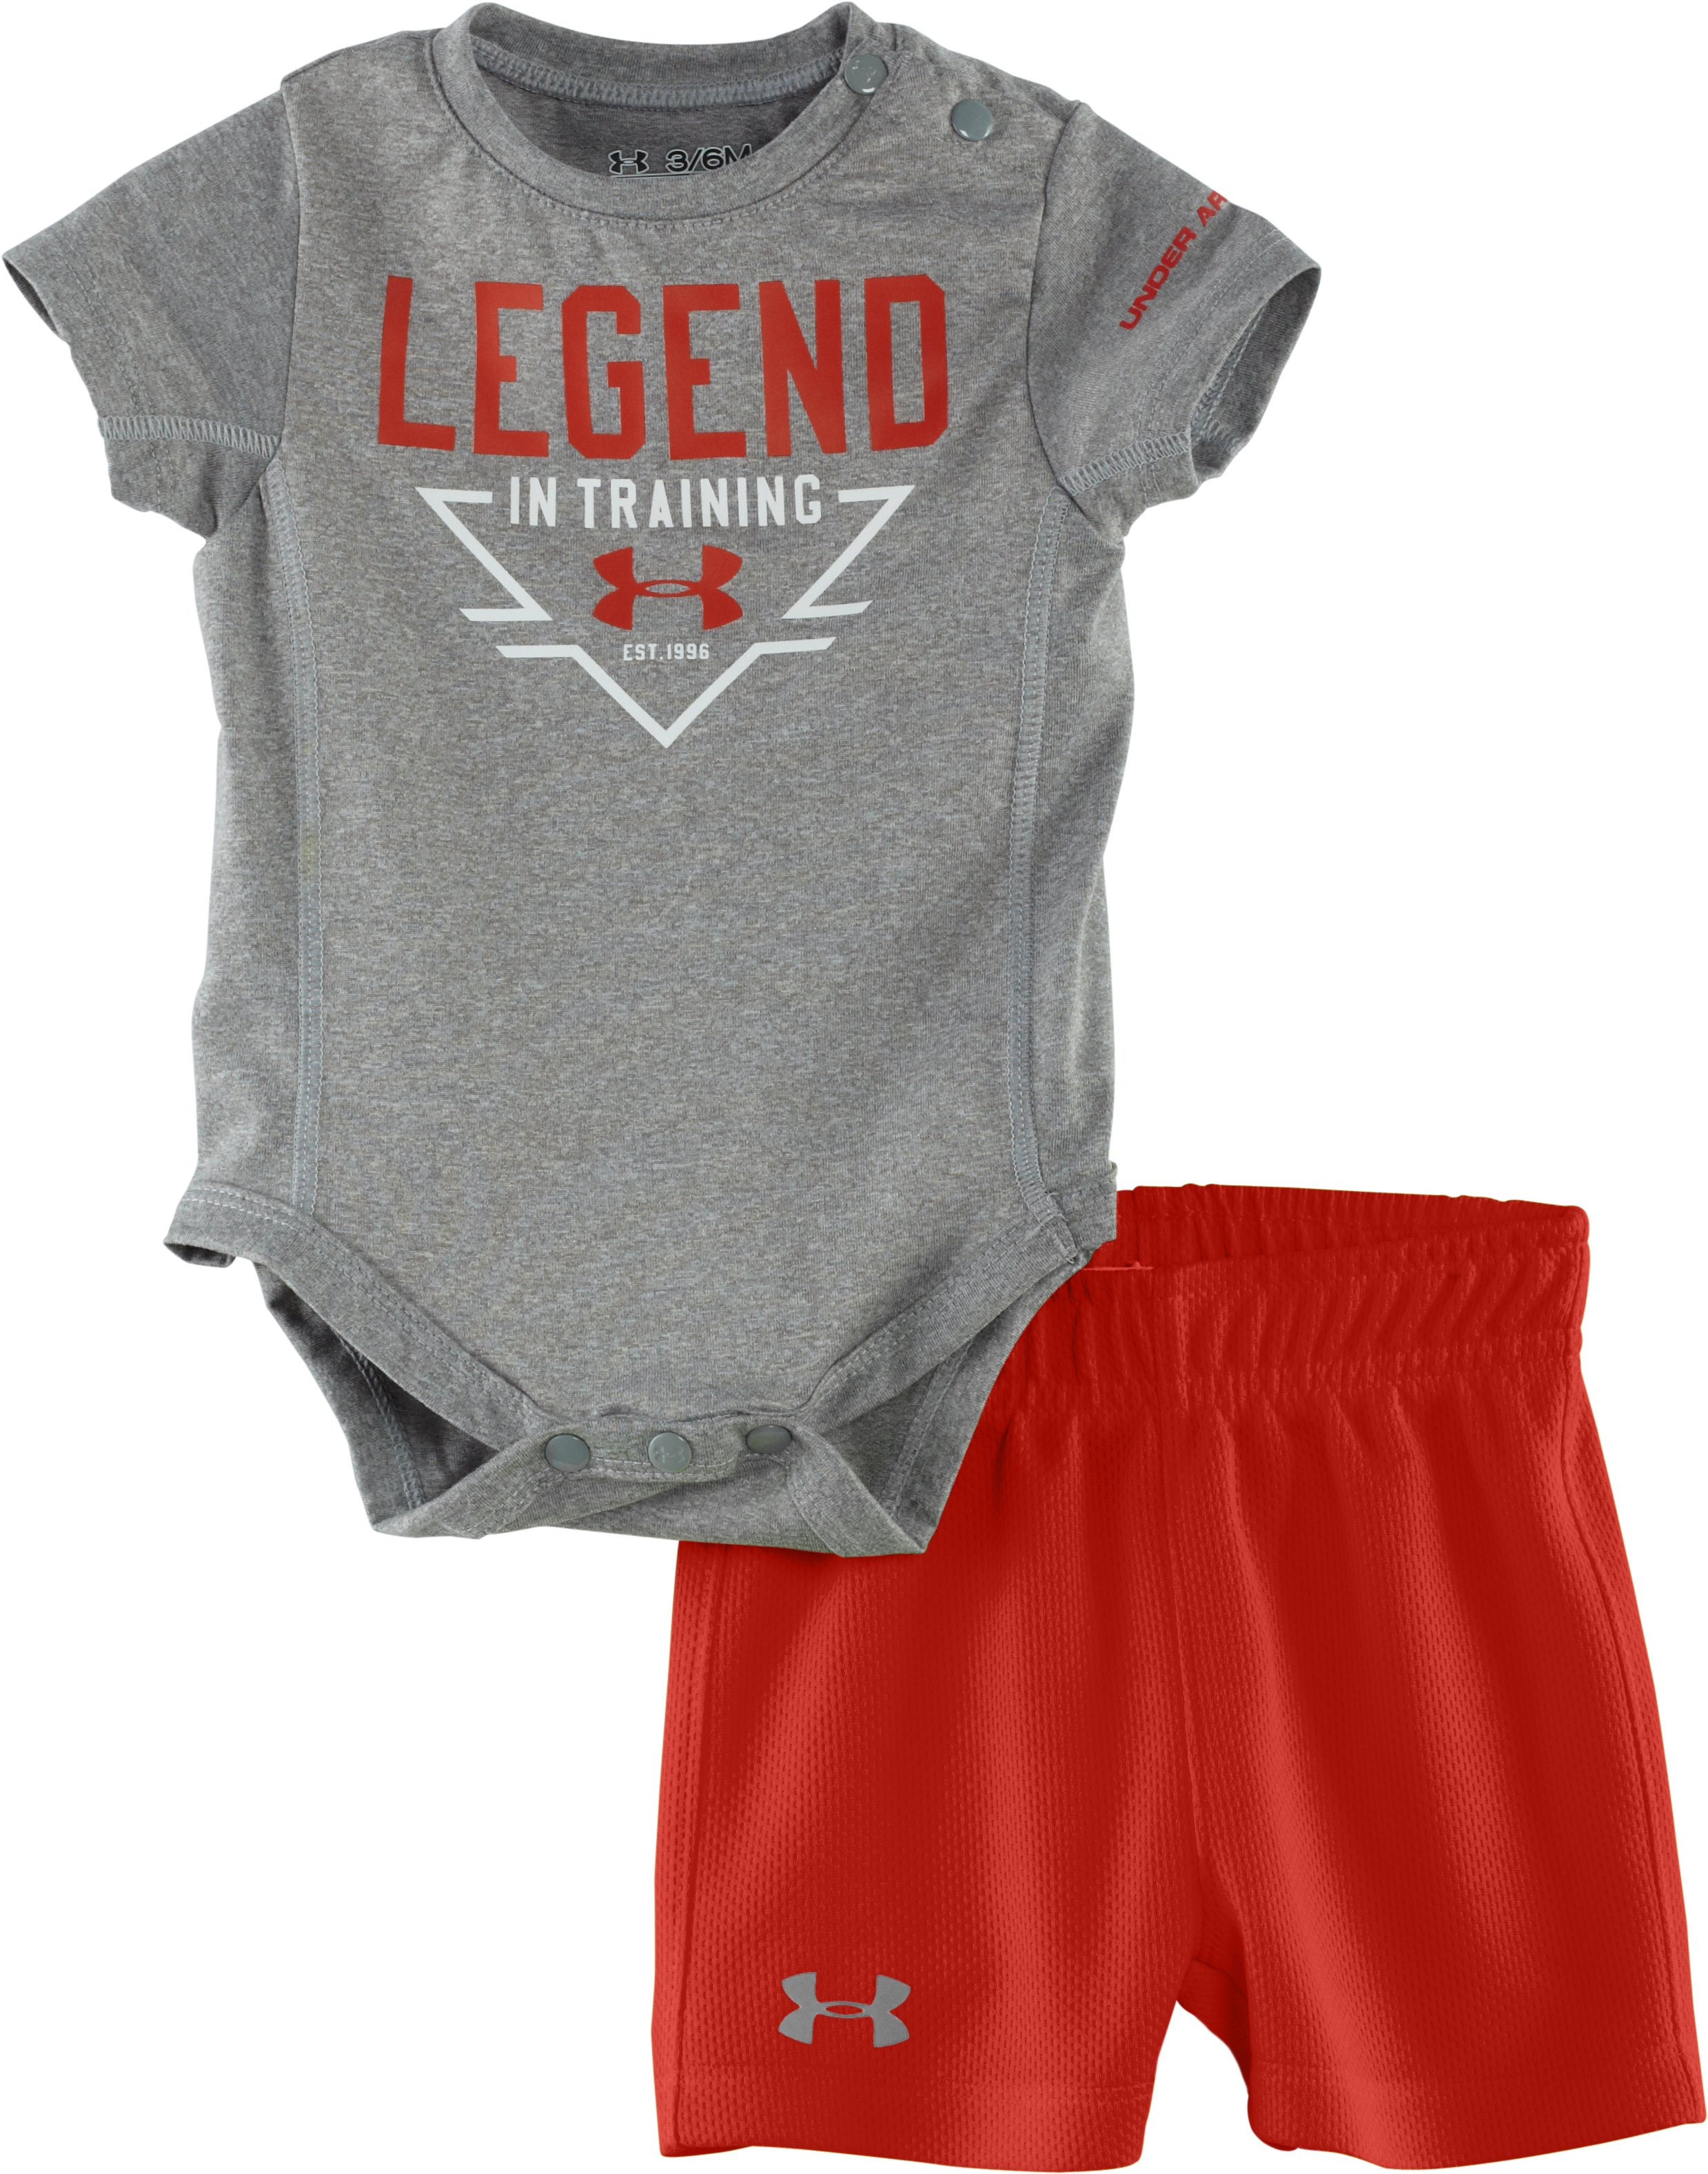 Boys' Newborn UA Legend In Training 2-Piece Set, True Gray Heather, zoomed image